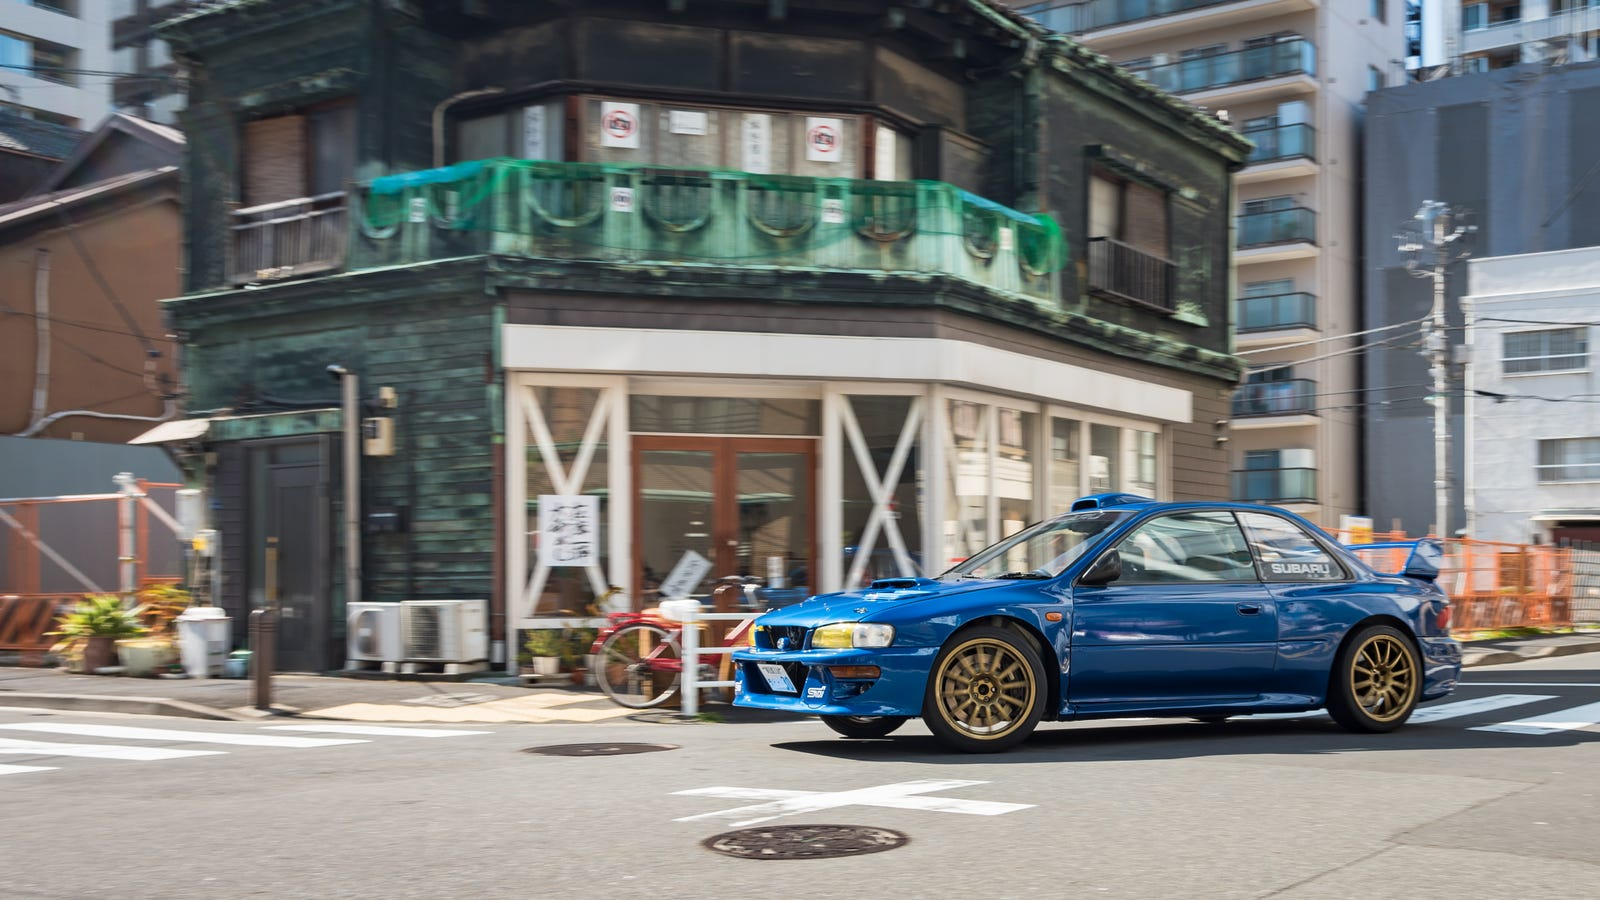 Don't mind the 'No Photos' sign on the house, I'm here for the Subaru